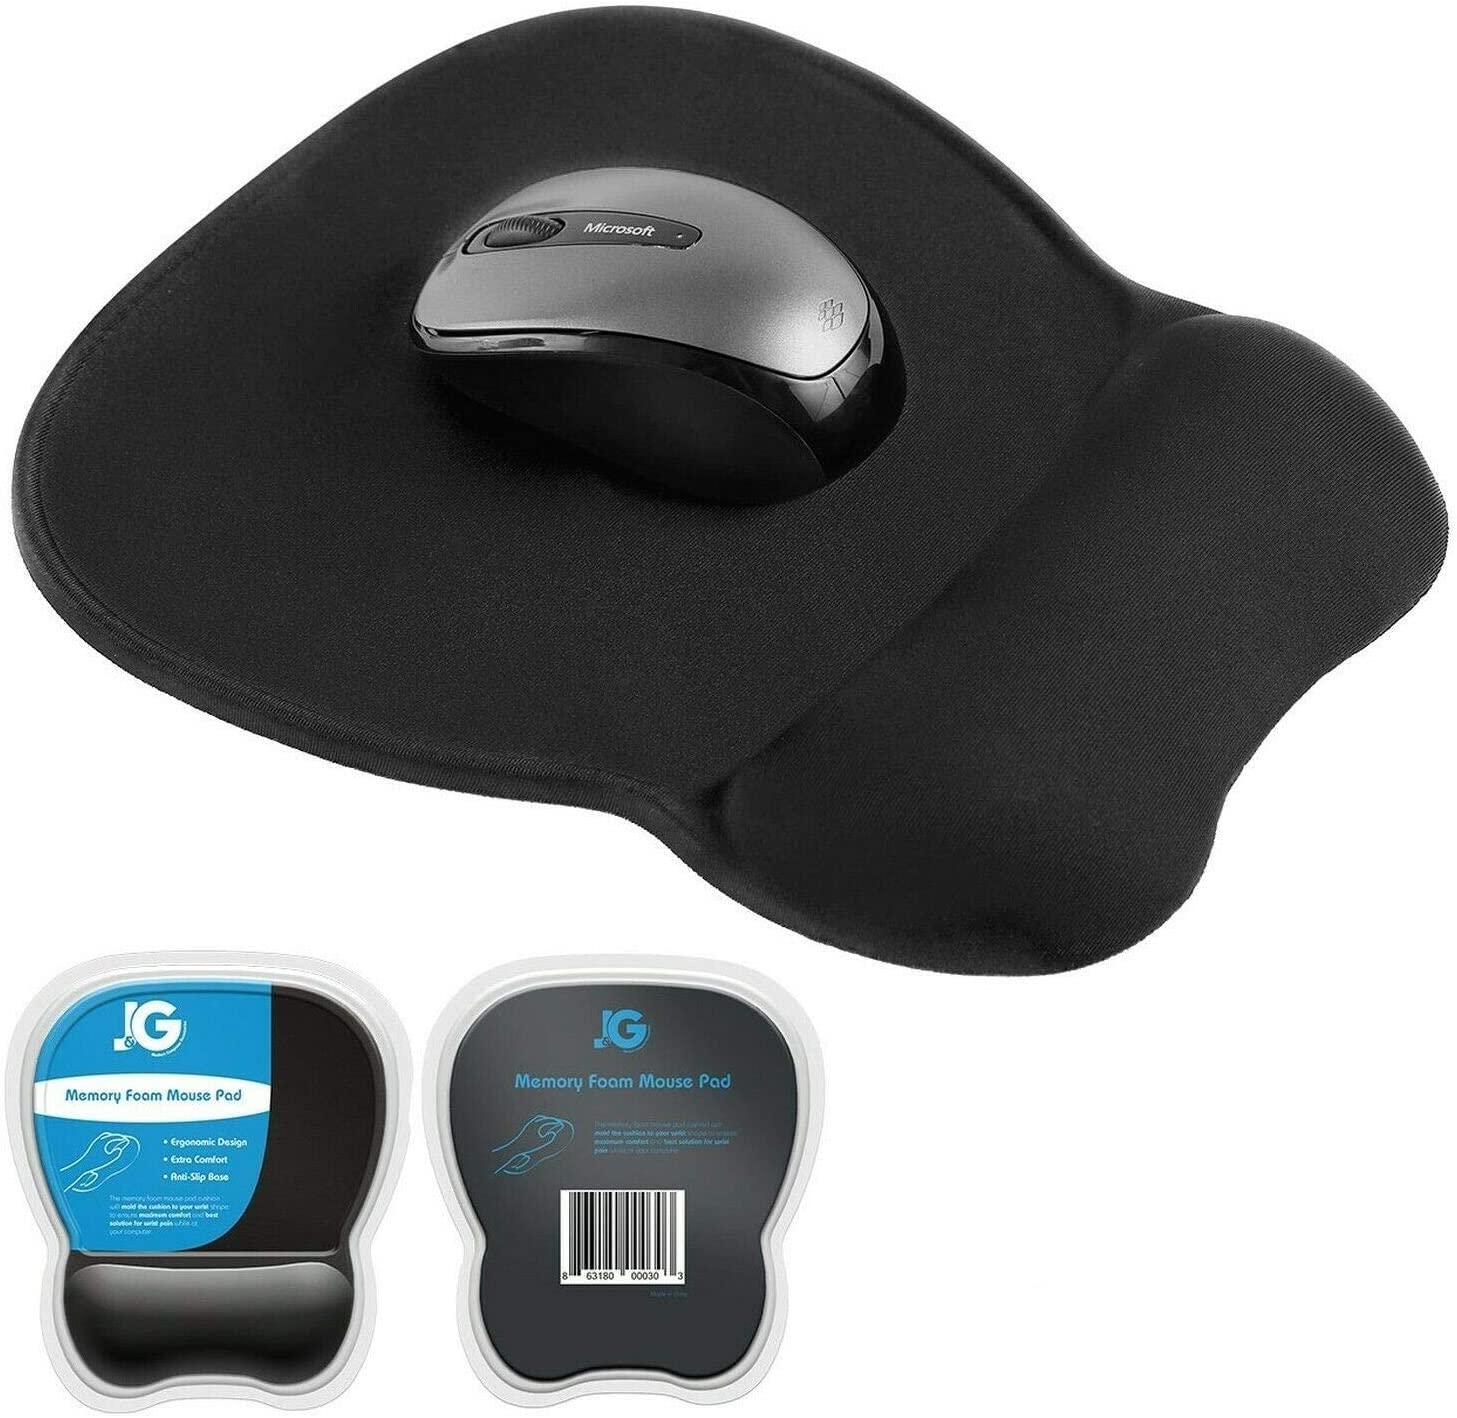 Tucson Mall Ergonomic Mouse Pad with Wrist Eliminates Rest Store Black Support